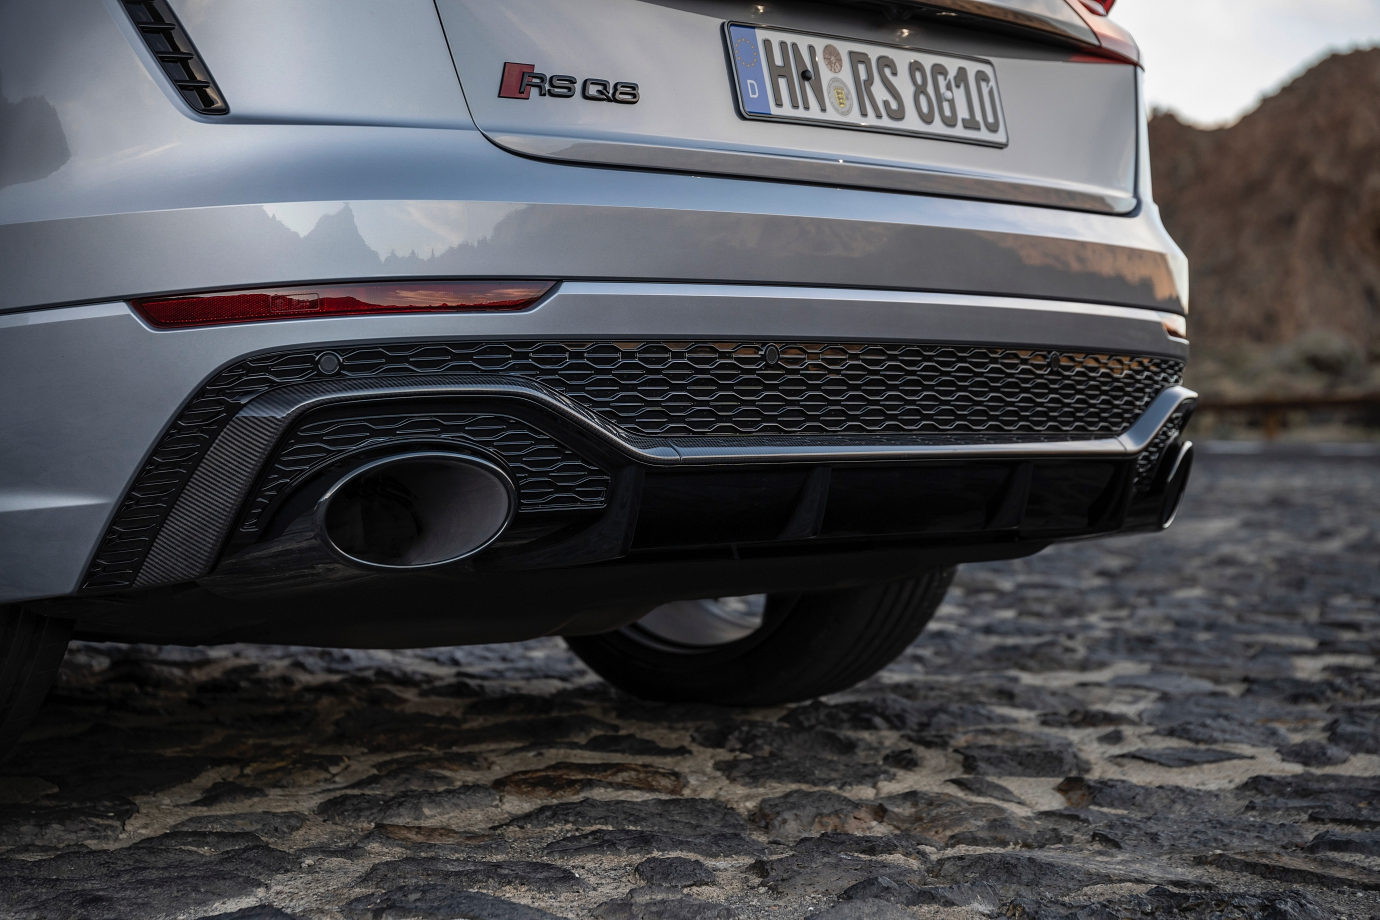 sports exhaust adds blackened tips to the oval tailpipes